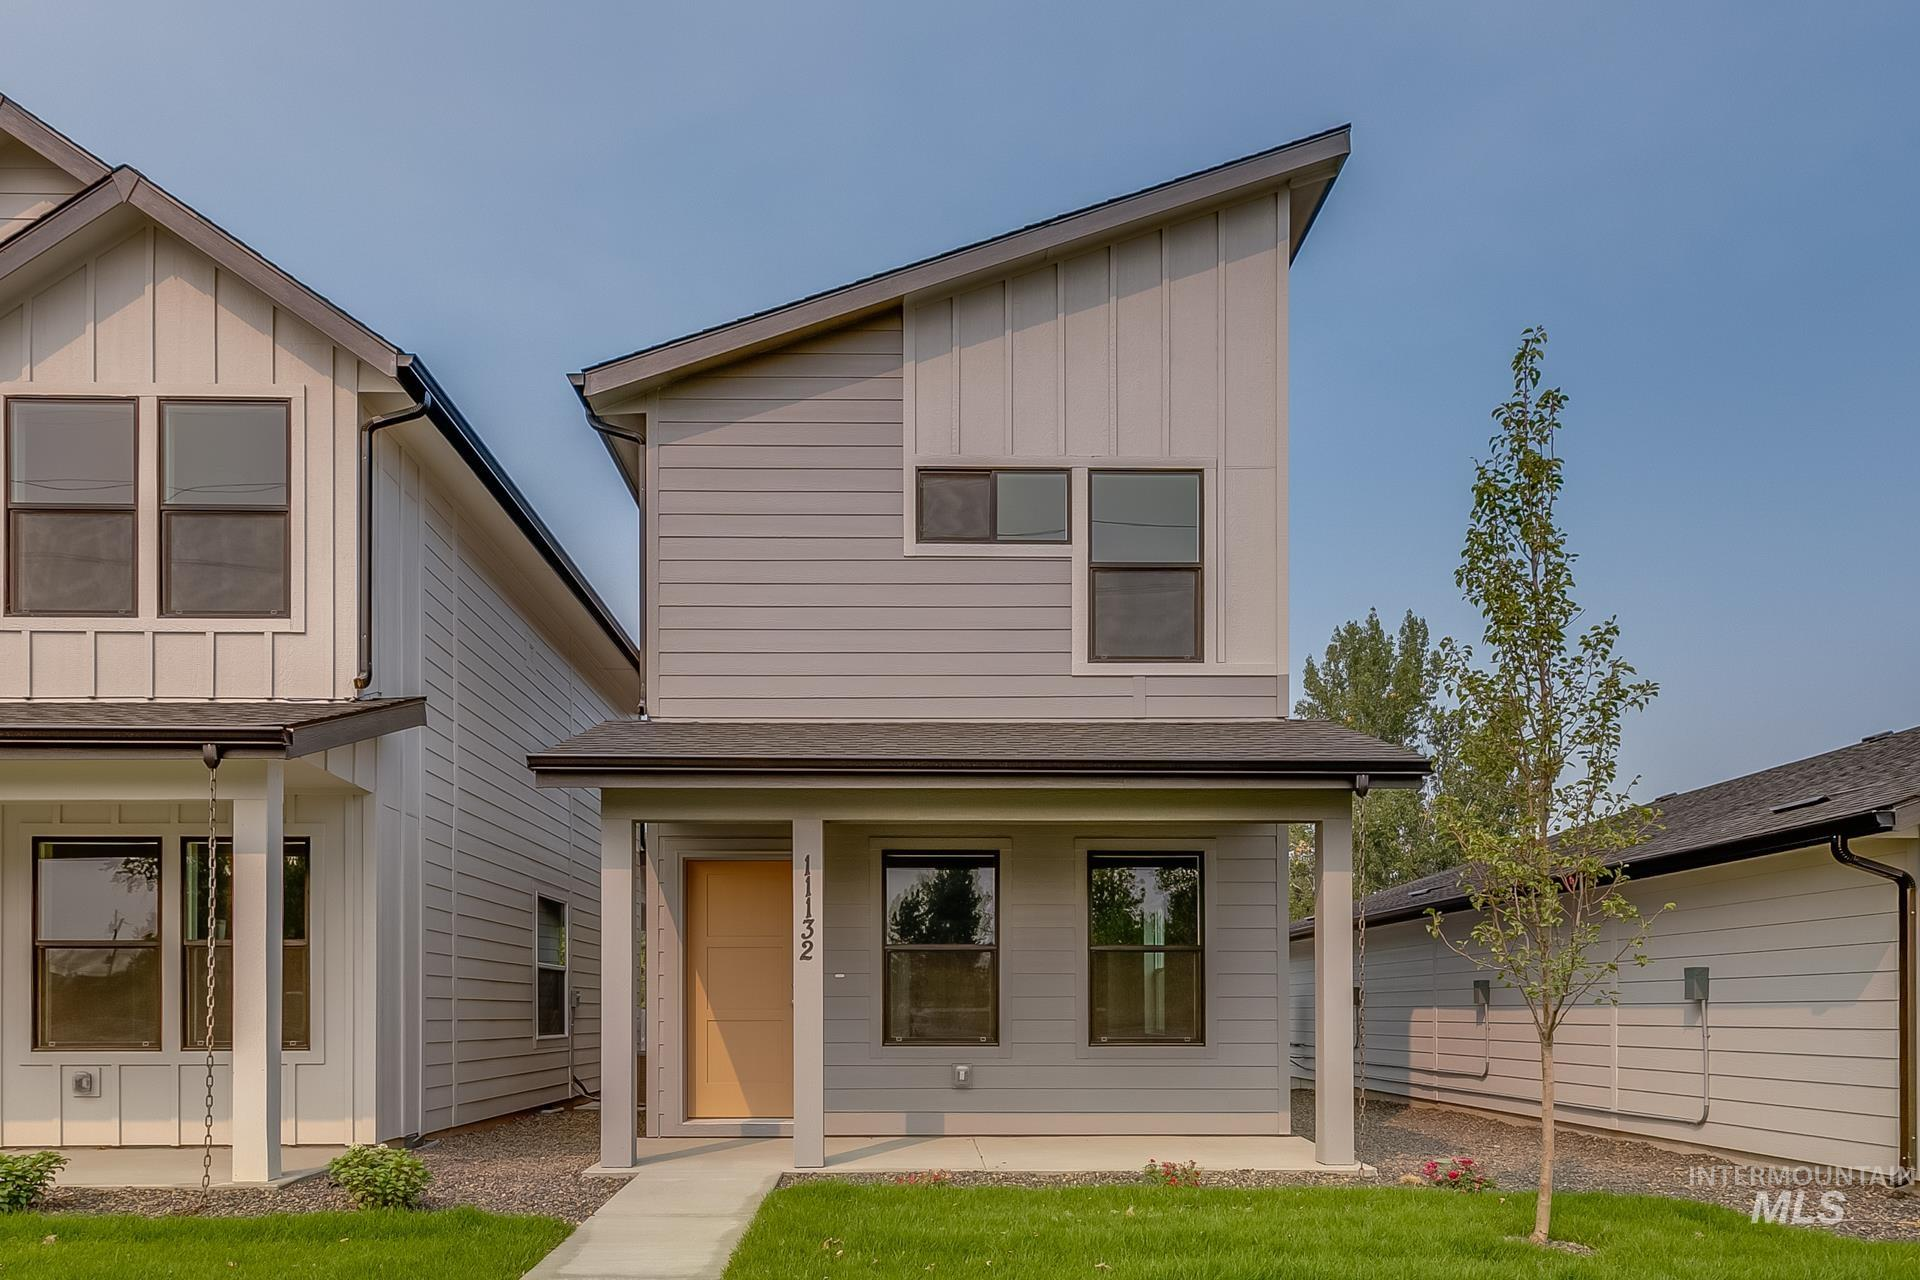 Photo of 11132 Ustick Rd Boise ID 83713-0000